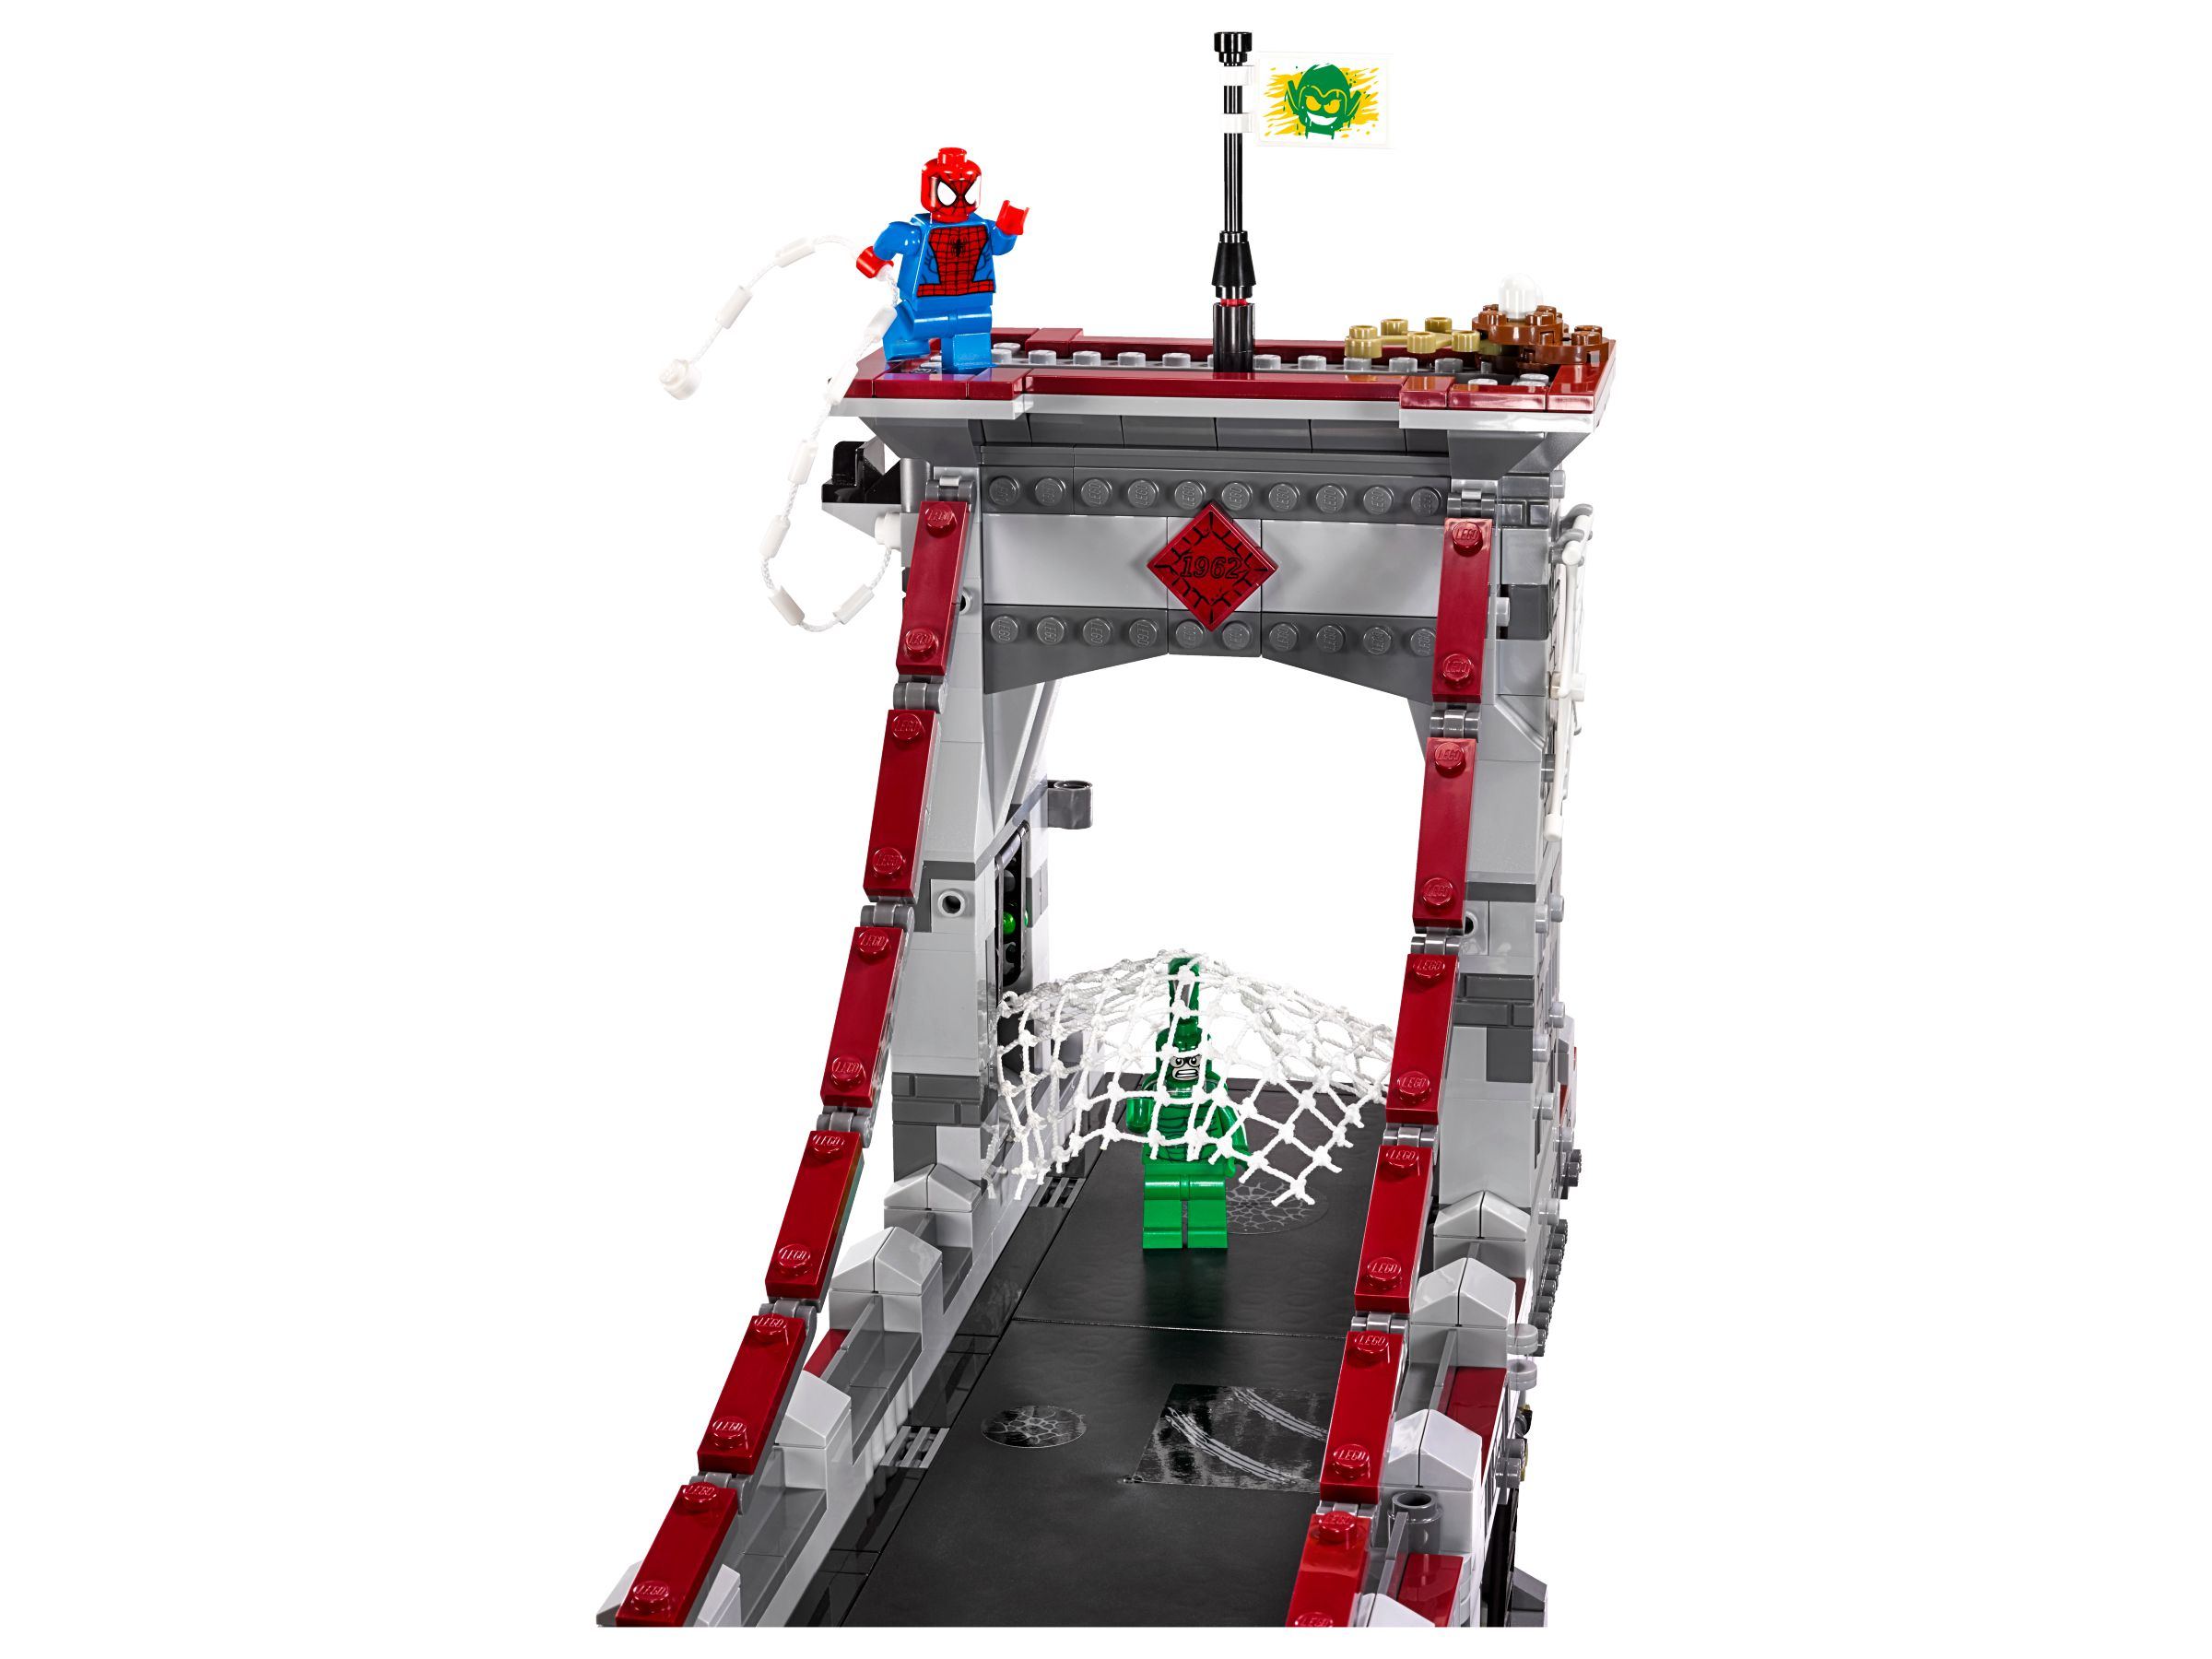 LEGO Super Heroes 76057 Spider-Man: Ultimatives Brückenduell der Web-Warriors LEGO_76057_alt10.jpg